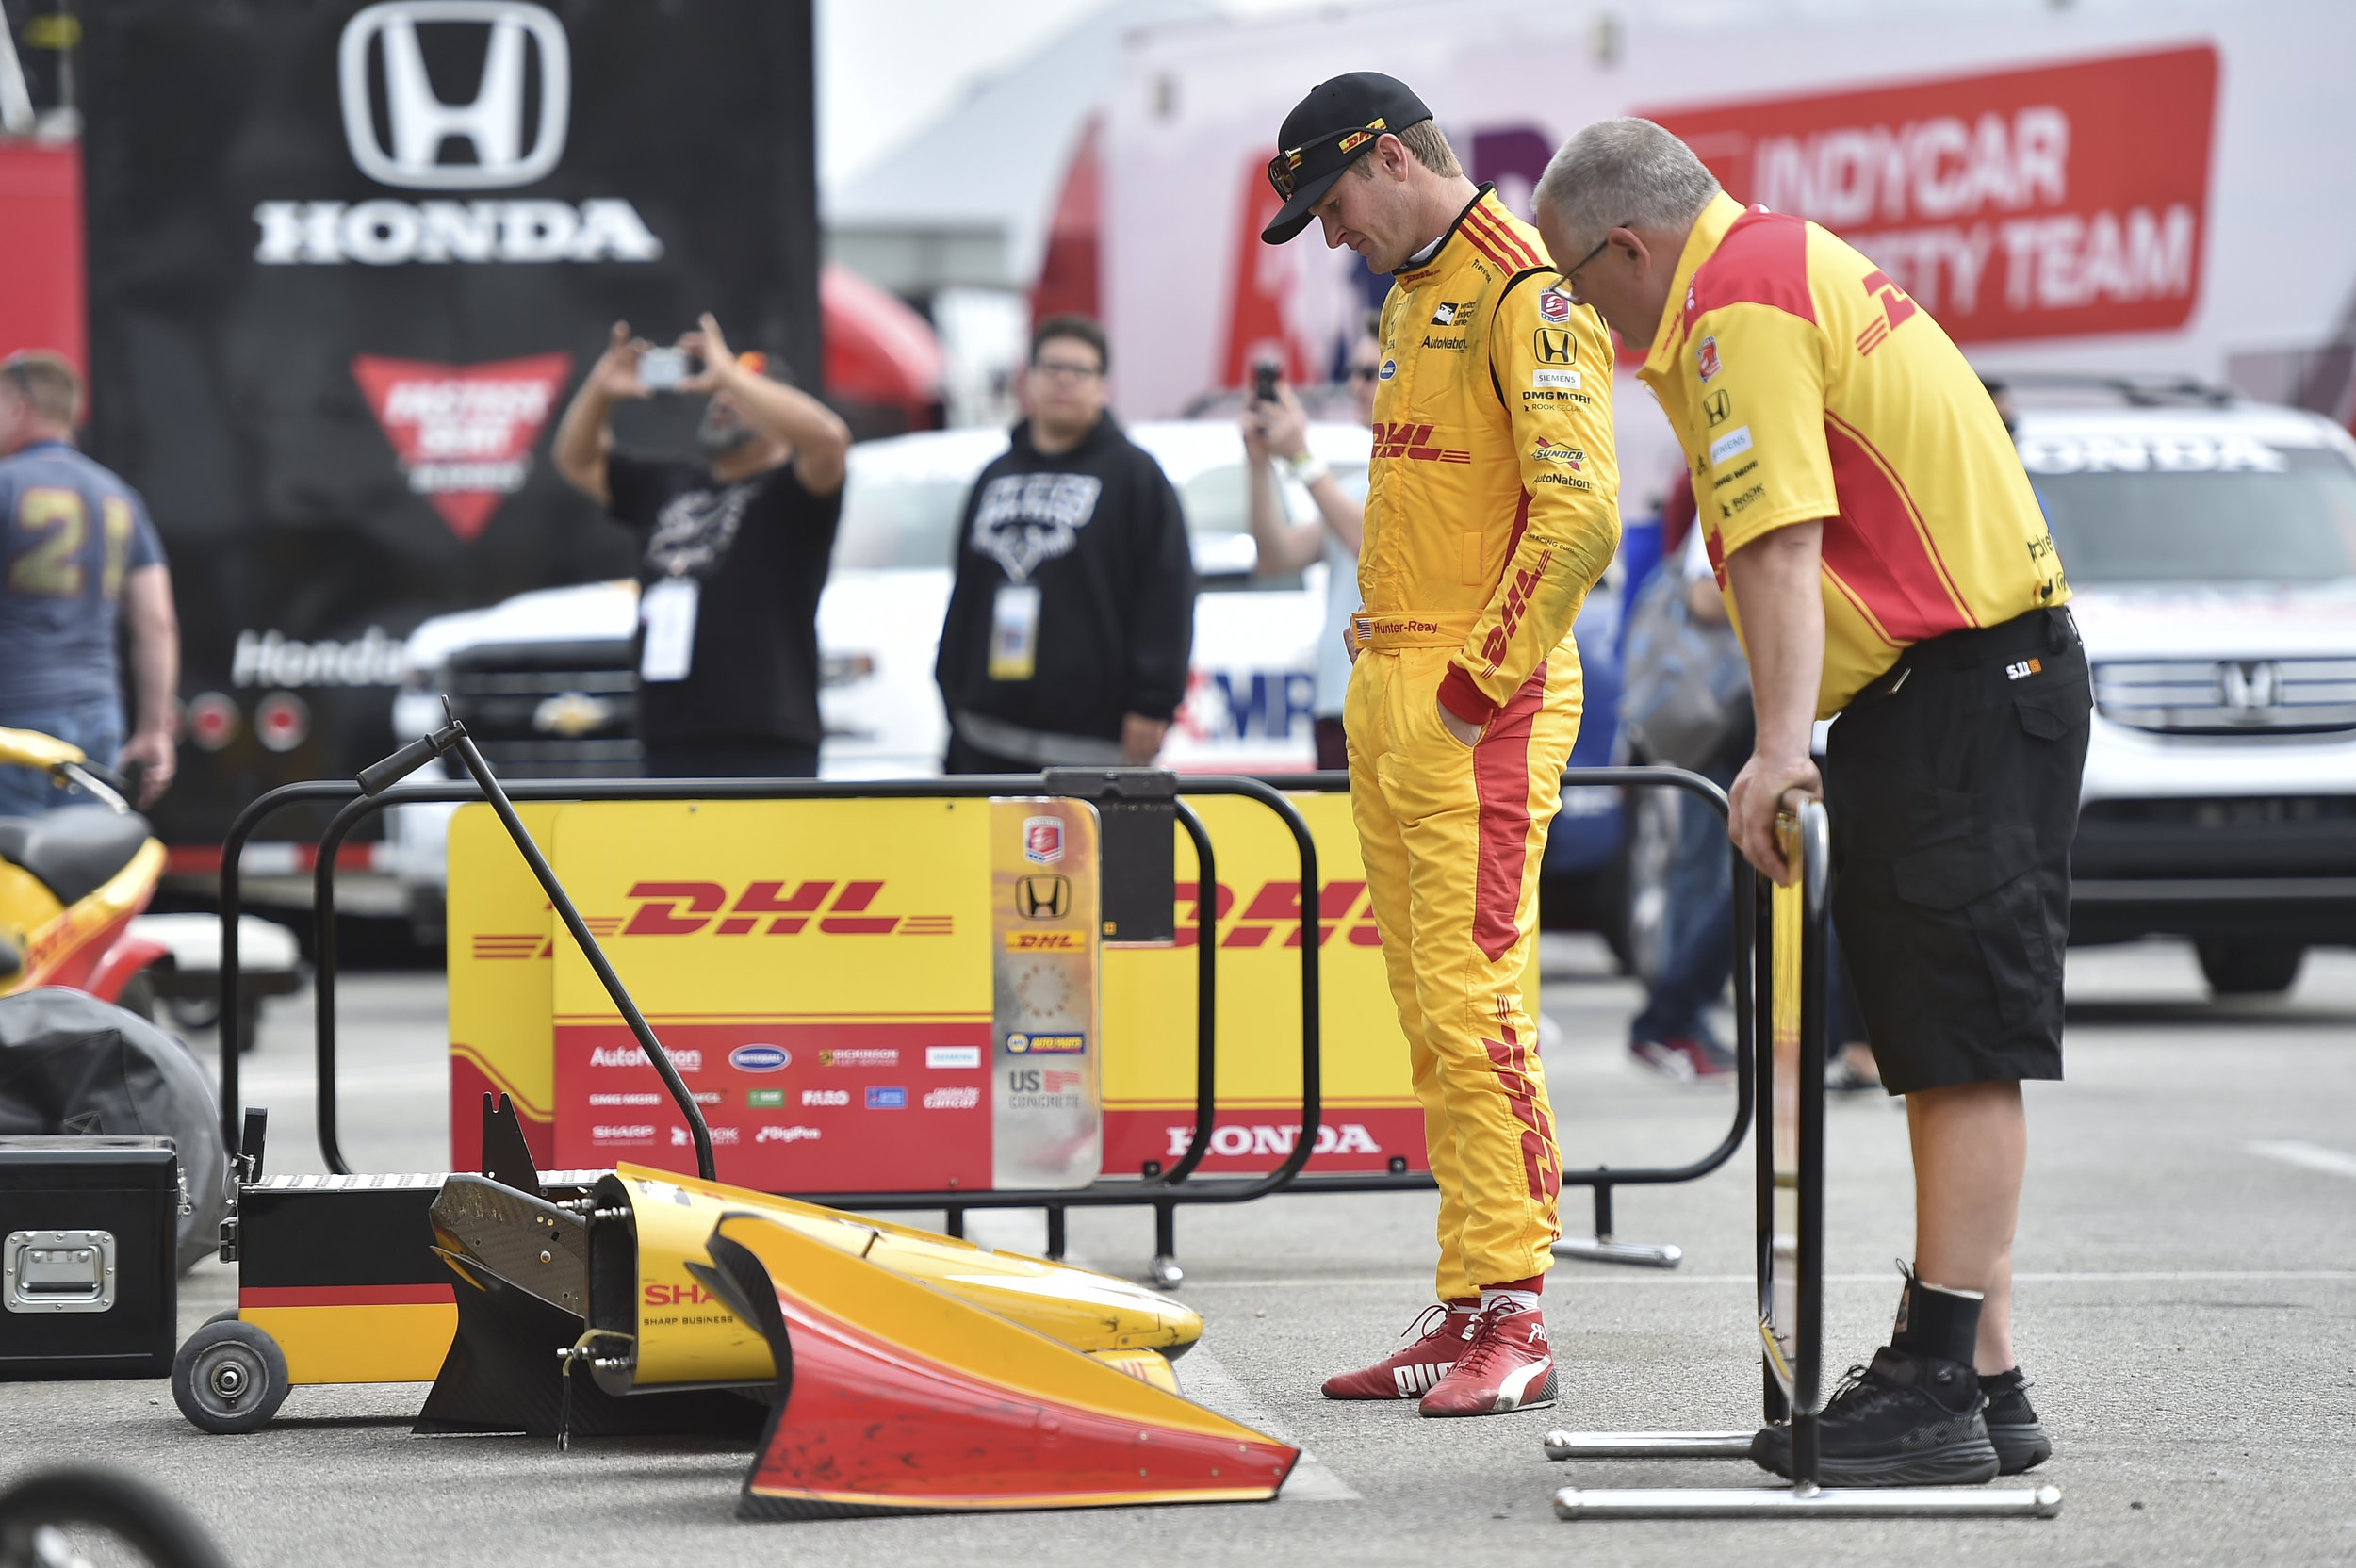 Ryan Hunter-Reay - Evaluates wing damage after the Long Beach Race